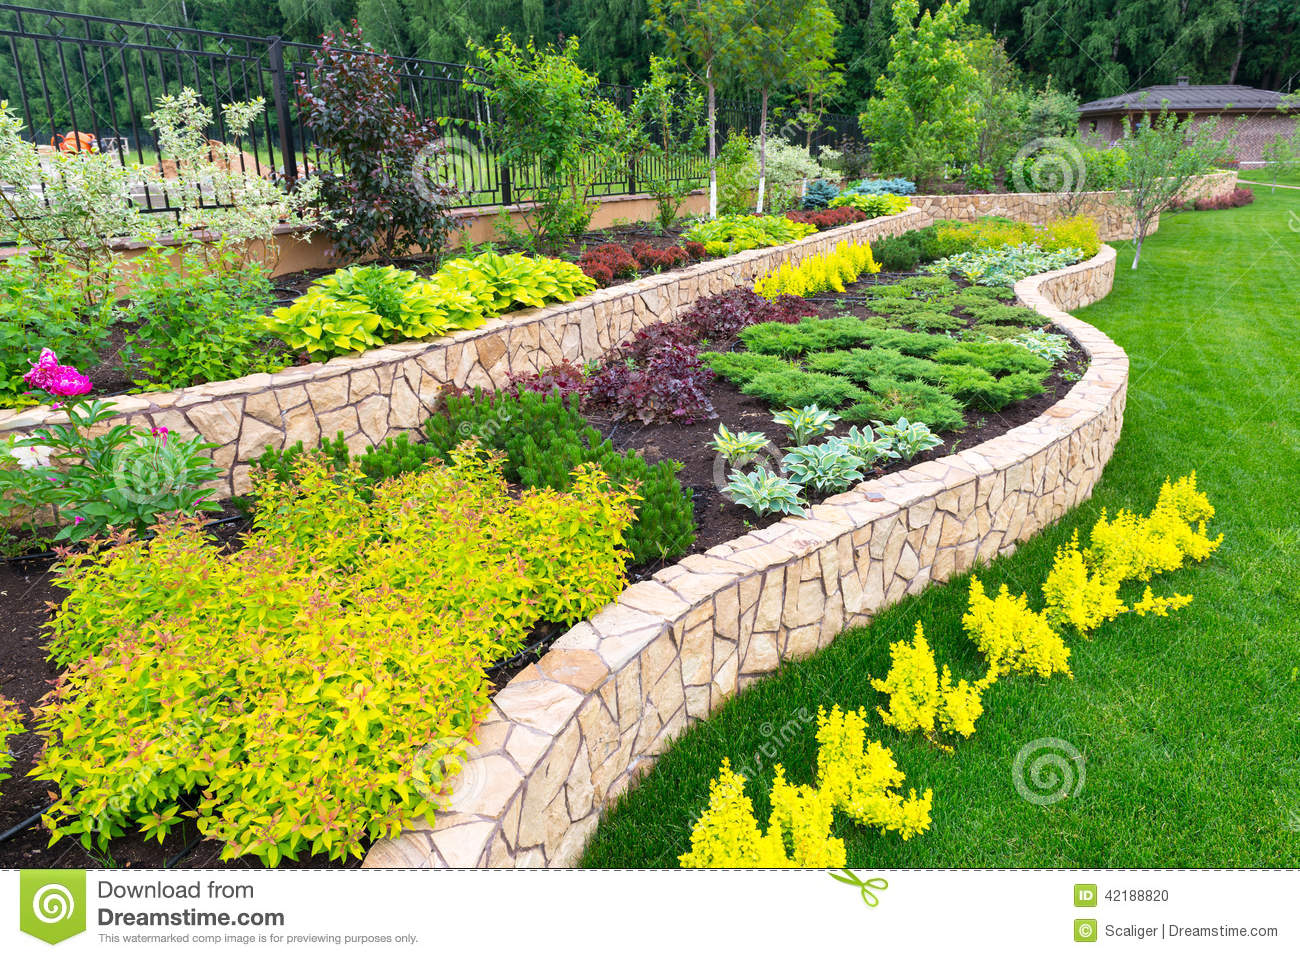 Natural landscaping in home garden stock photo image of for Home garden landscape design